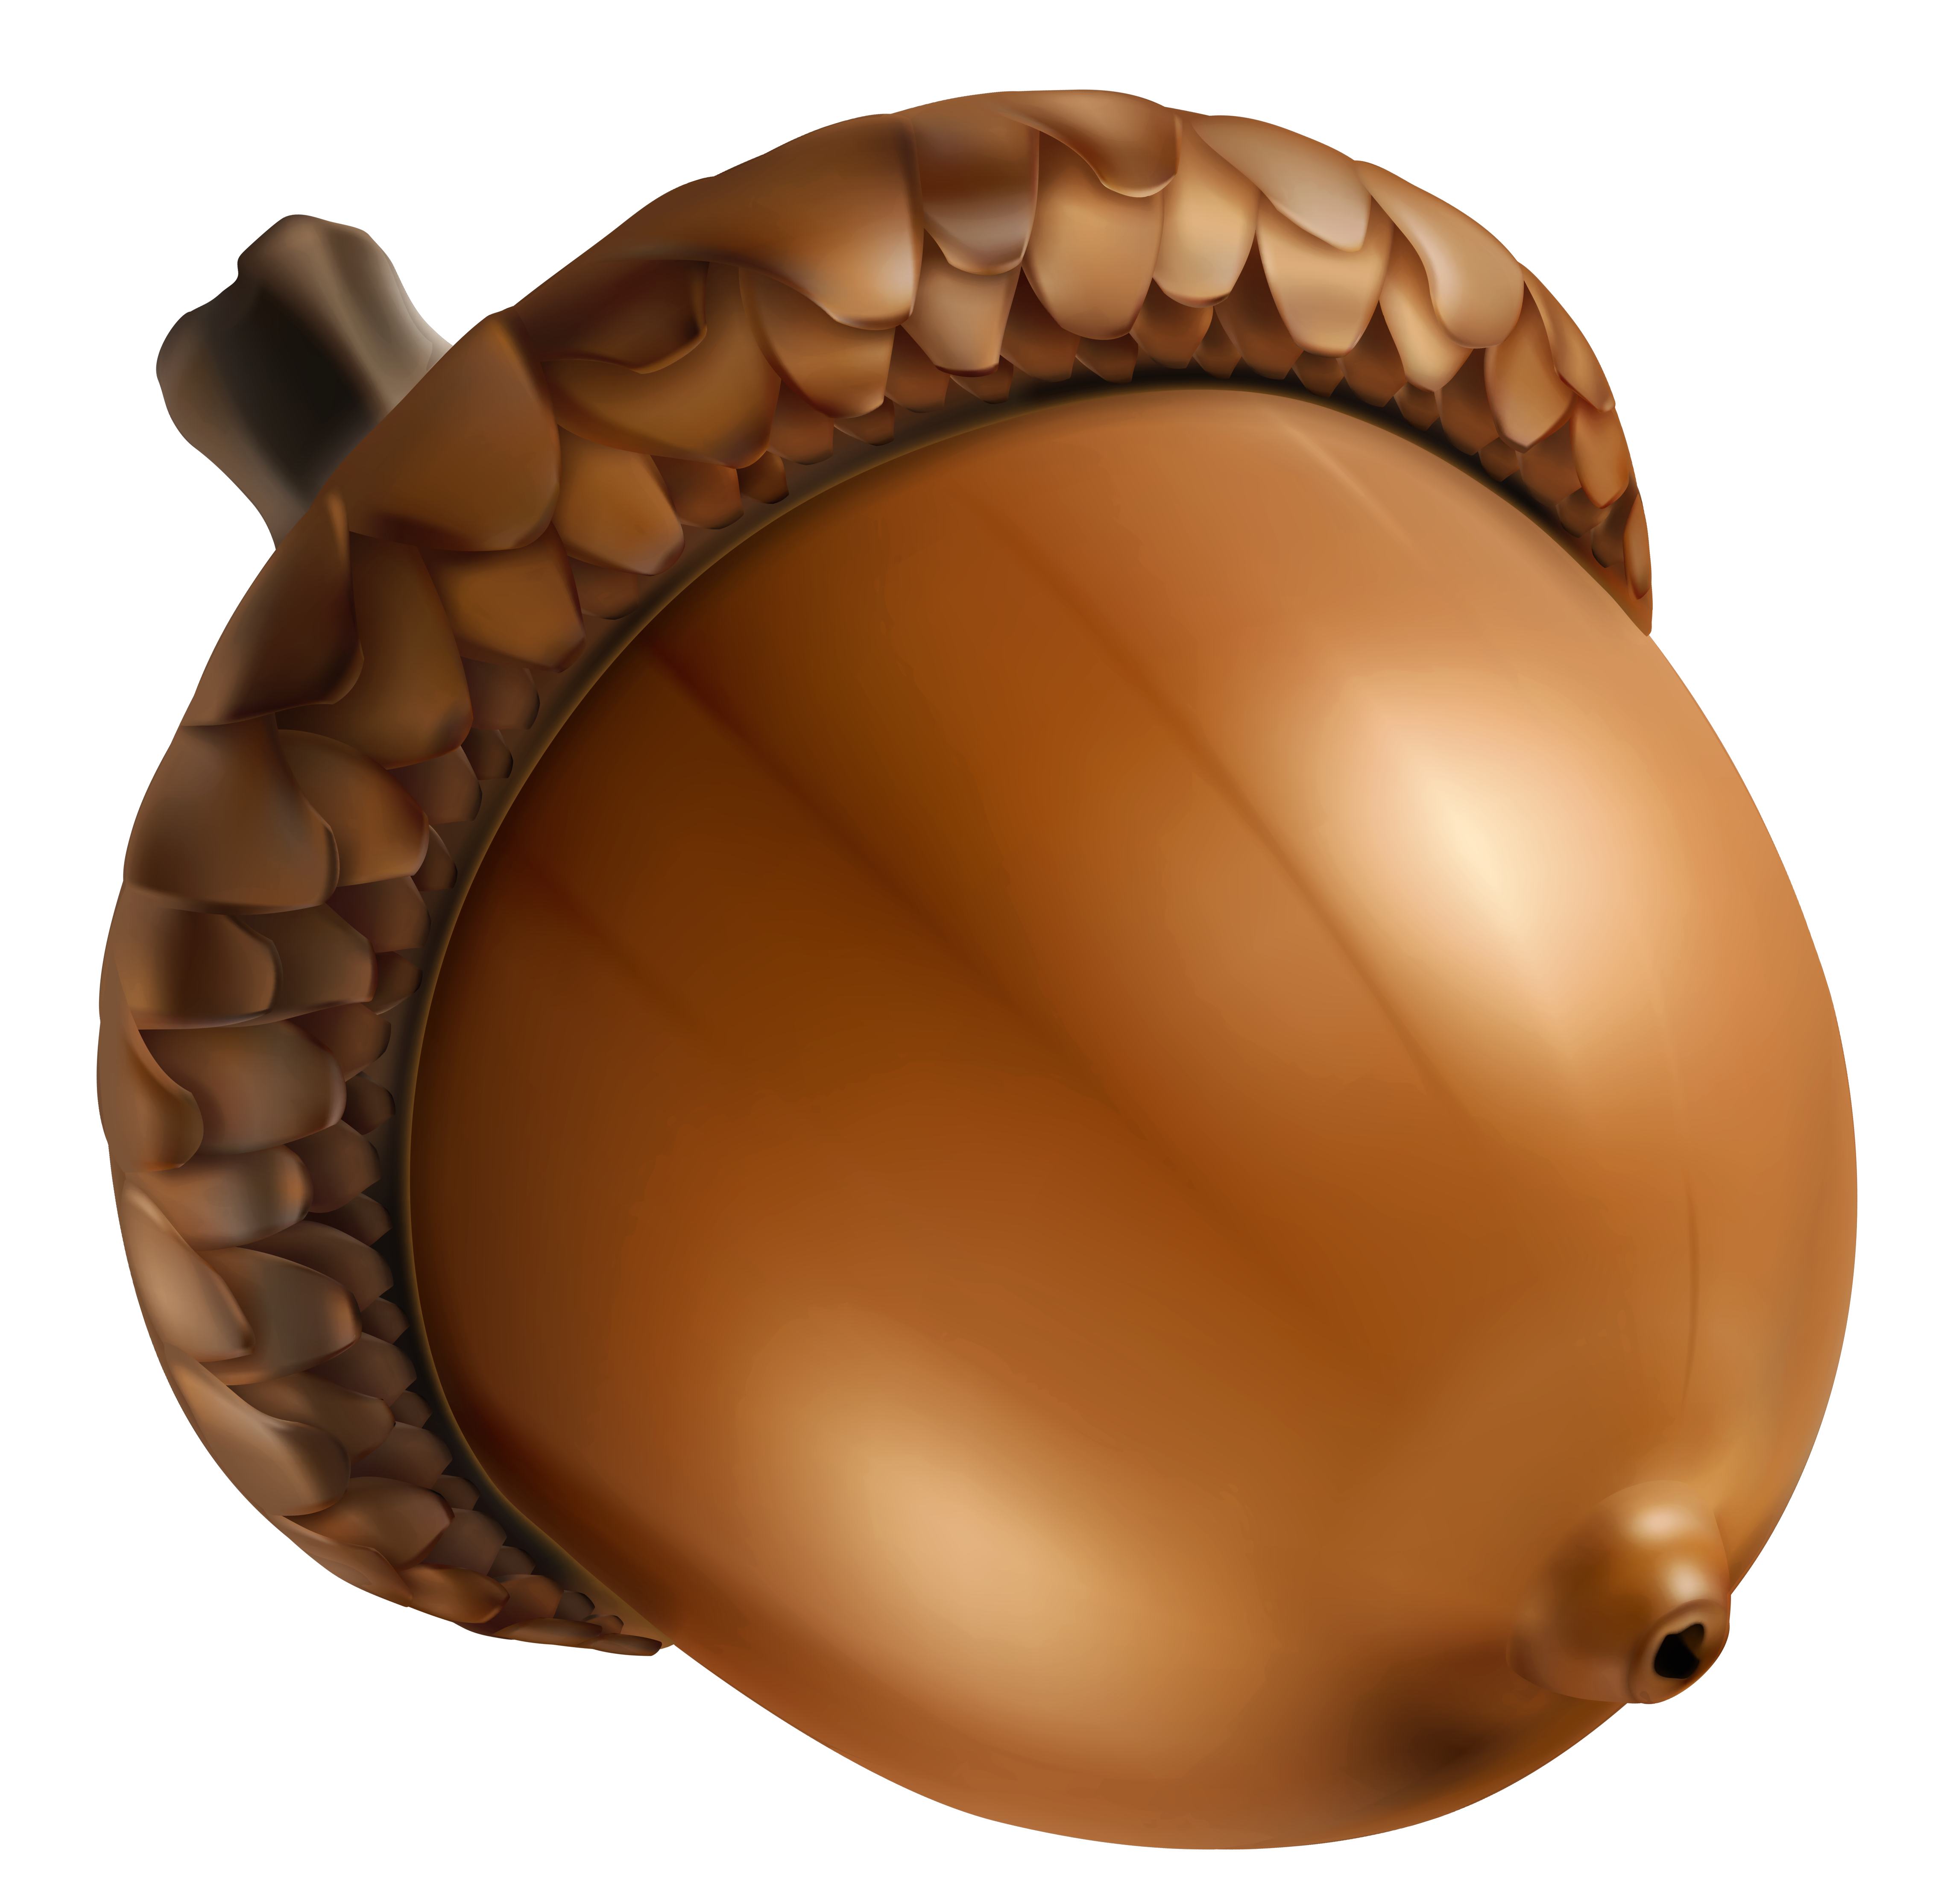 Png image gallery yopriceville. Acorn clipart